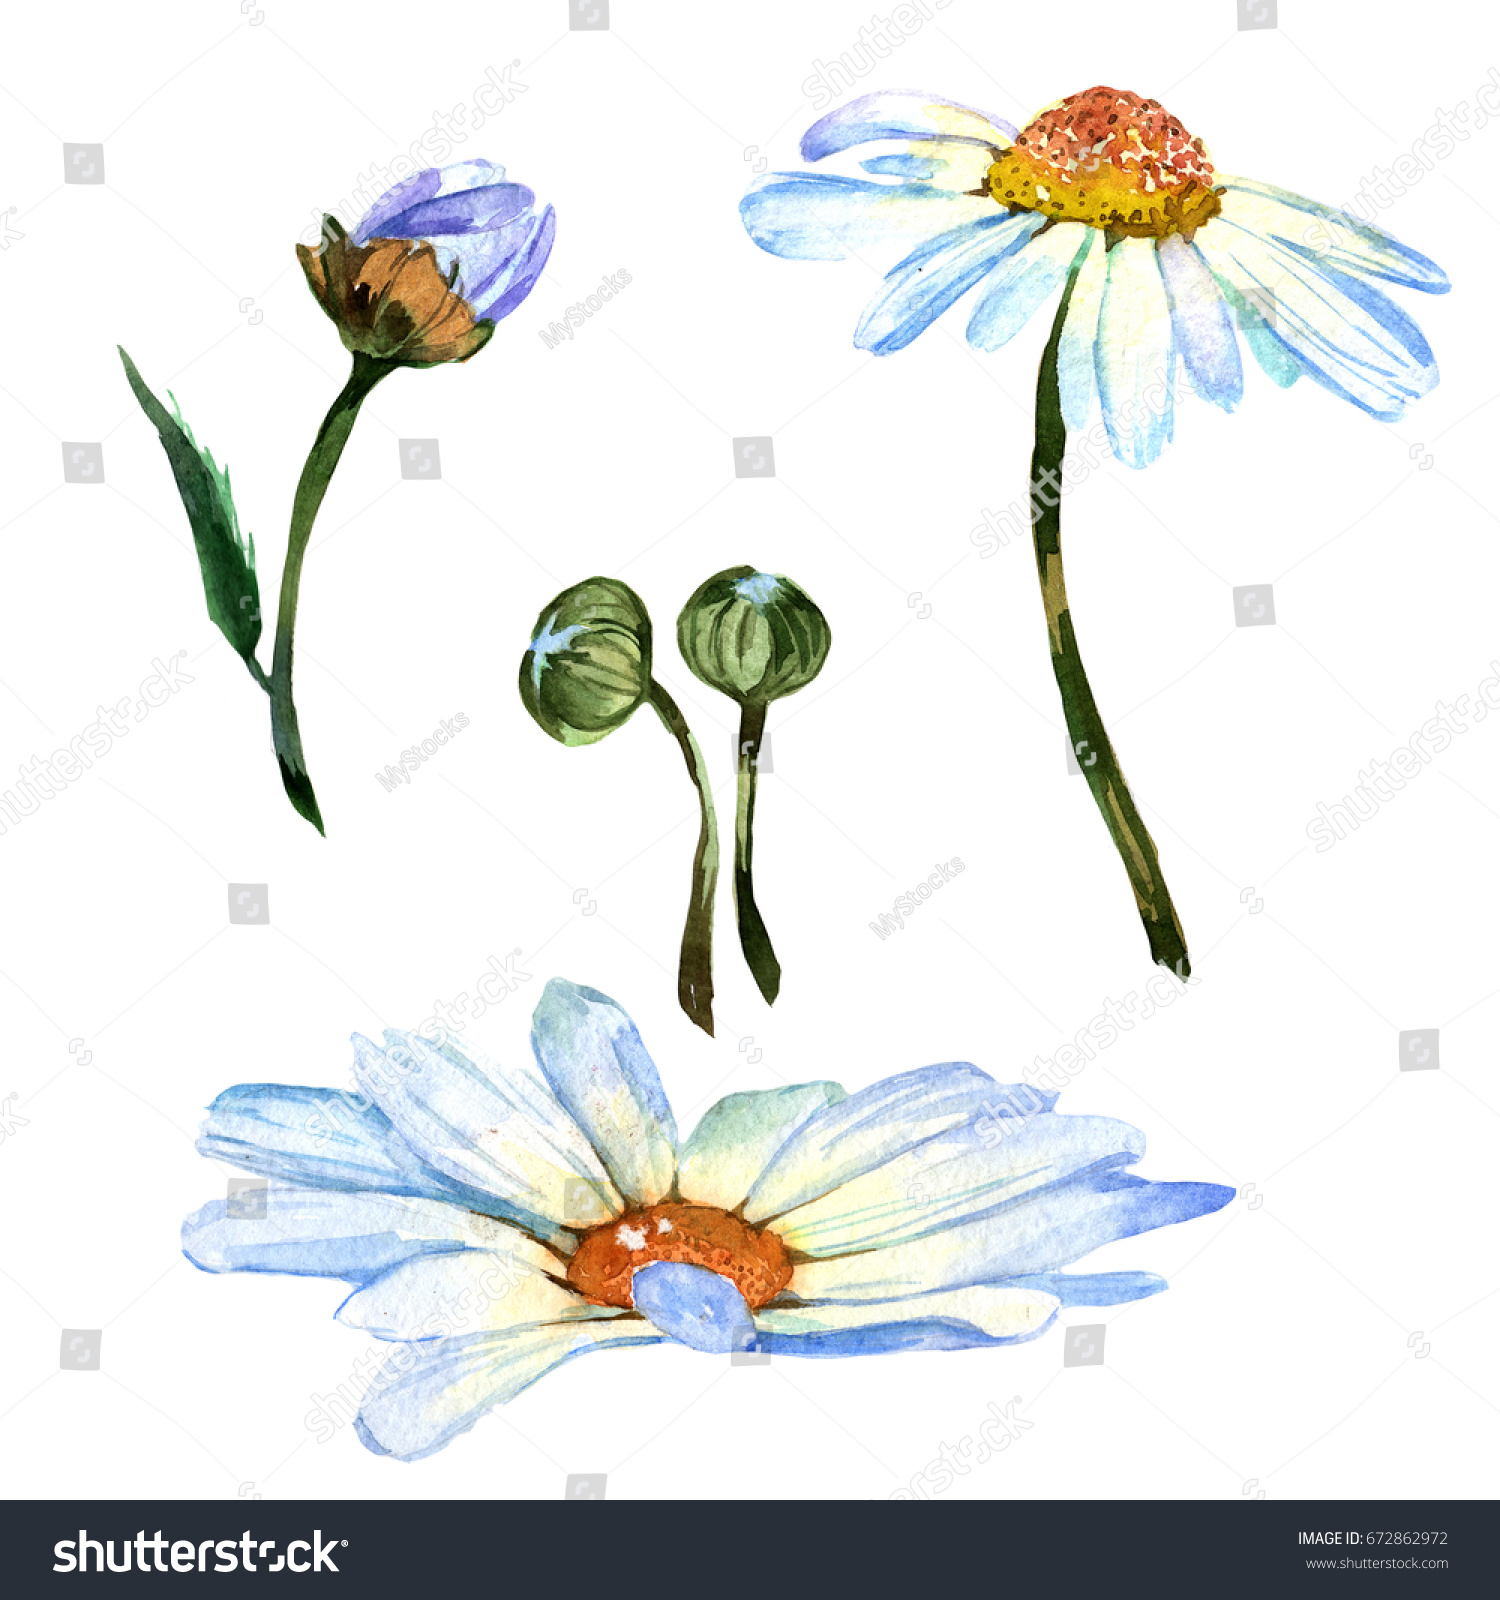 Wildflower Daisy Flower Watercolor Style Isolated Stock Illustration